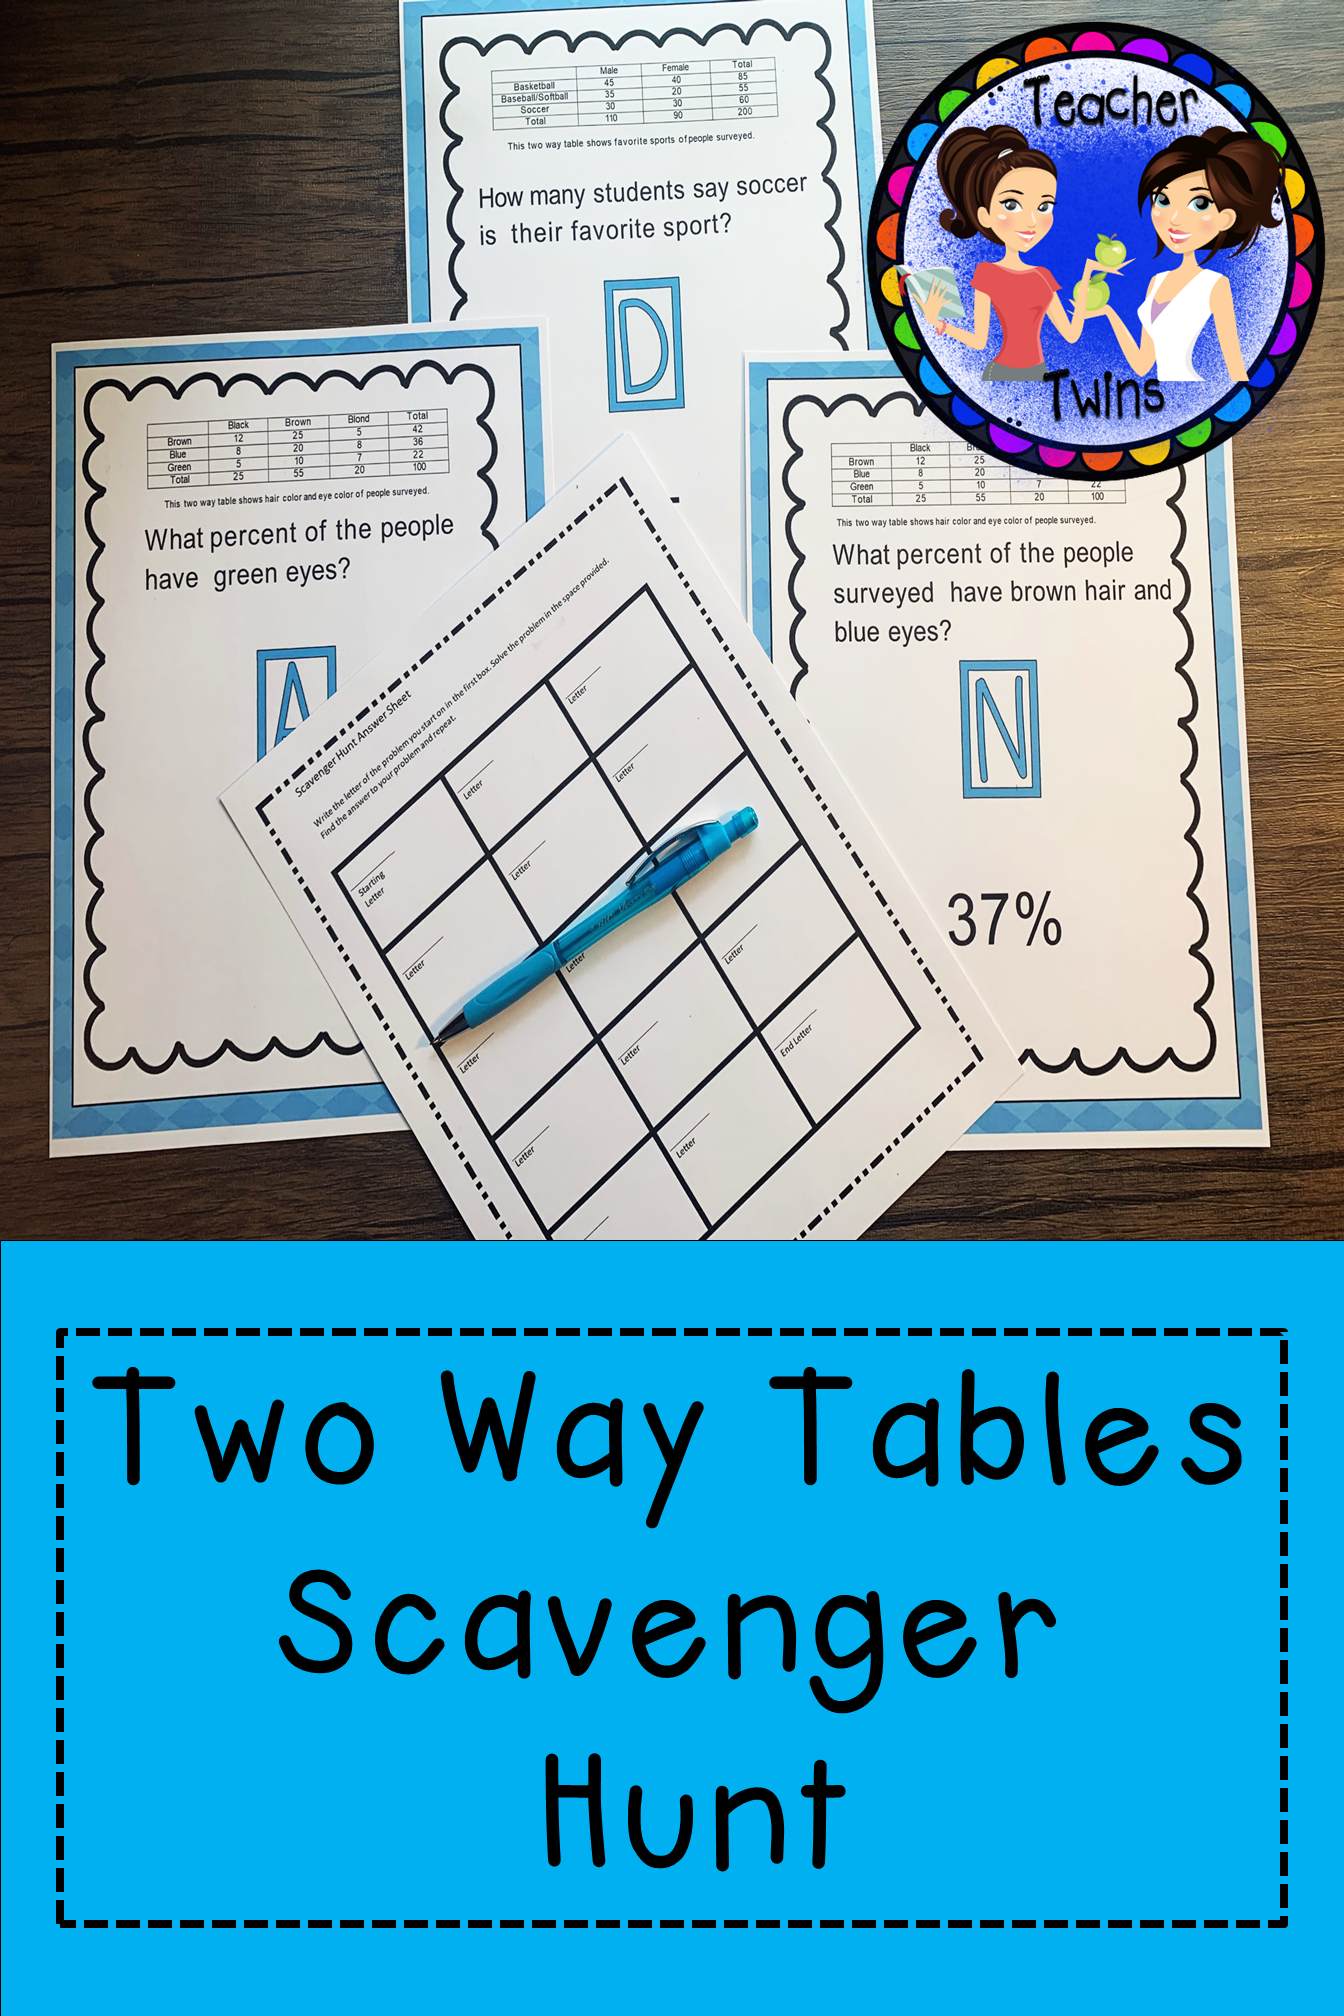 Two Way Tables Scavenger Hunt